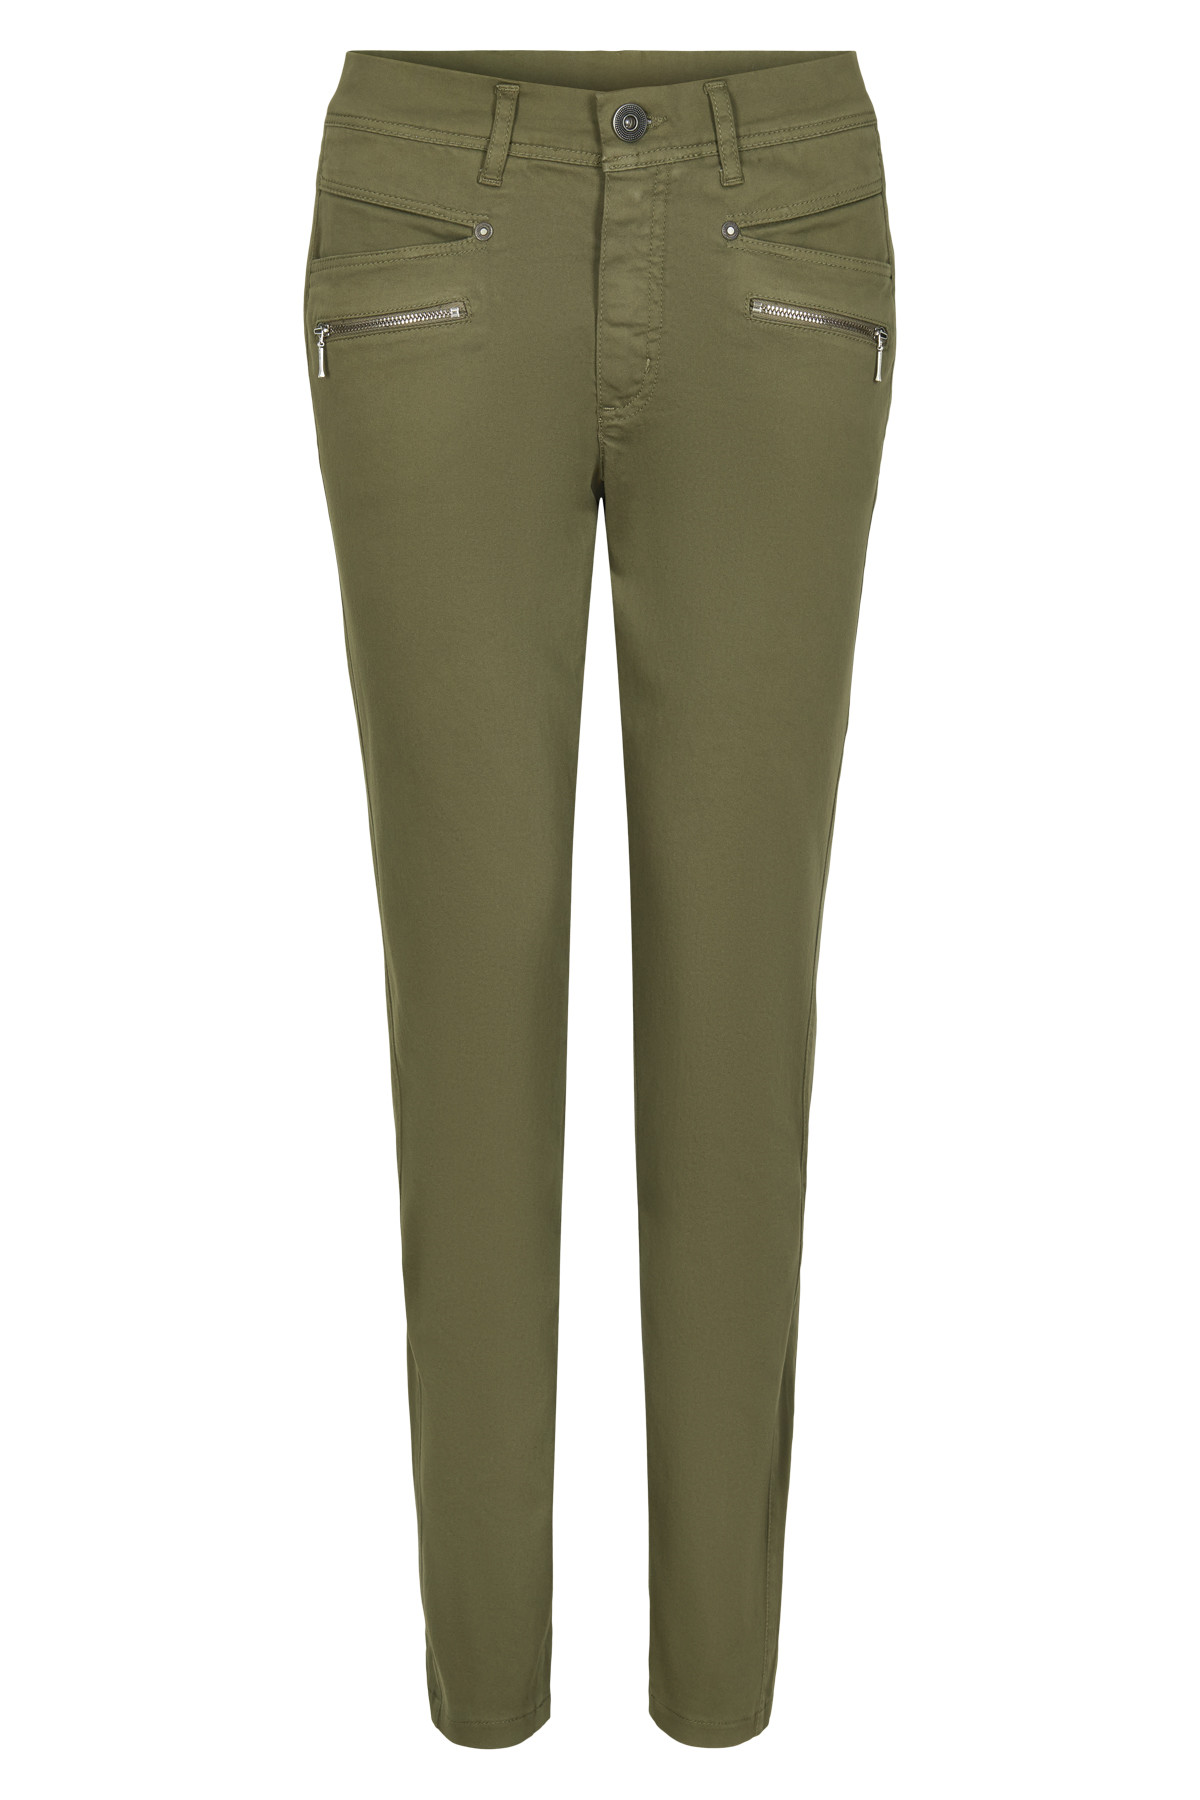 Image of 2BIZ RANY PANTS 43654 (Khaki, 40)